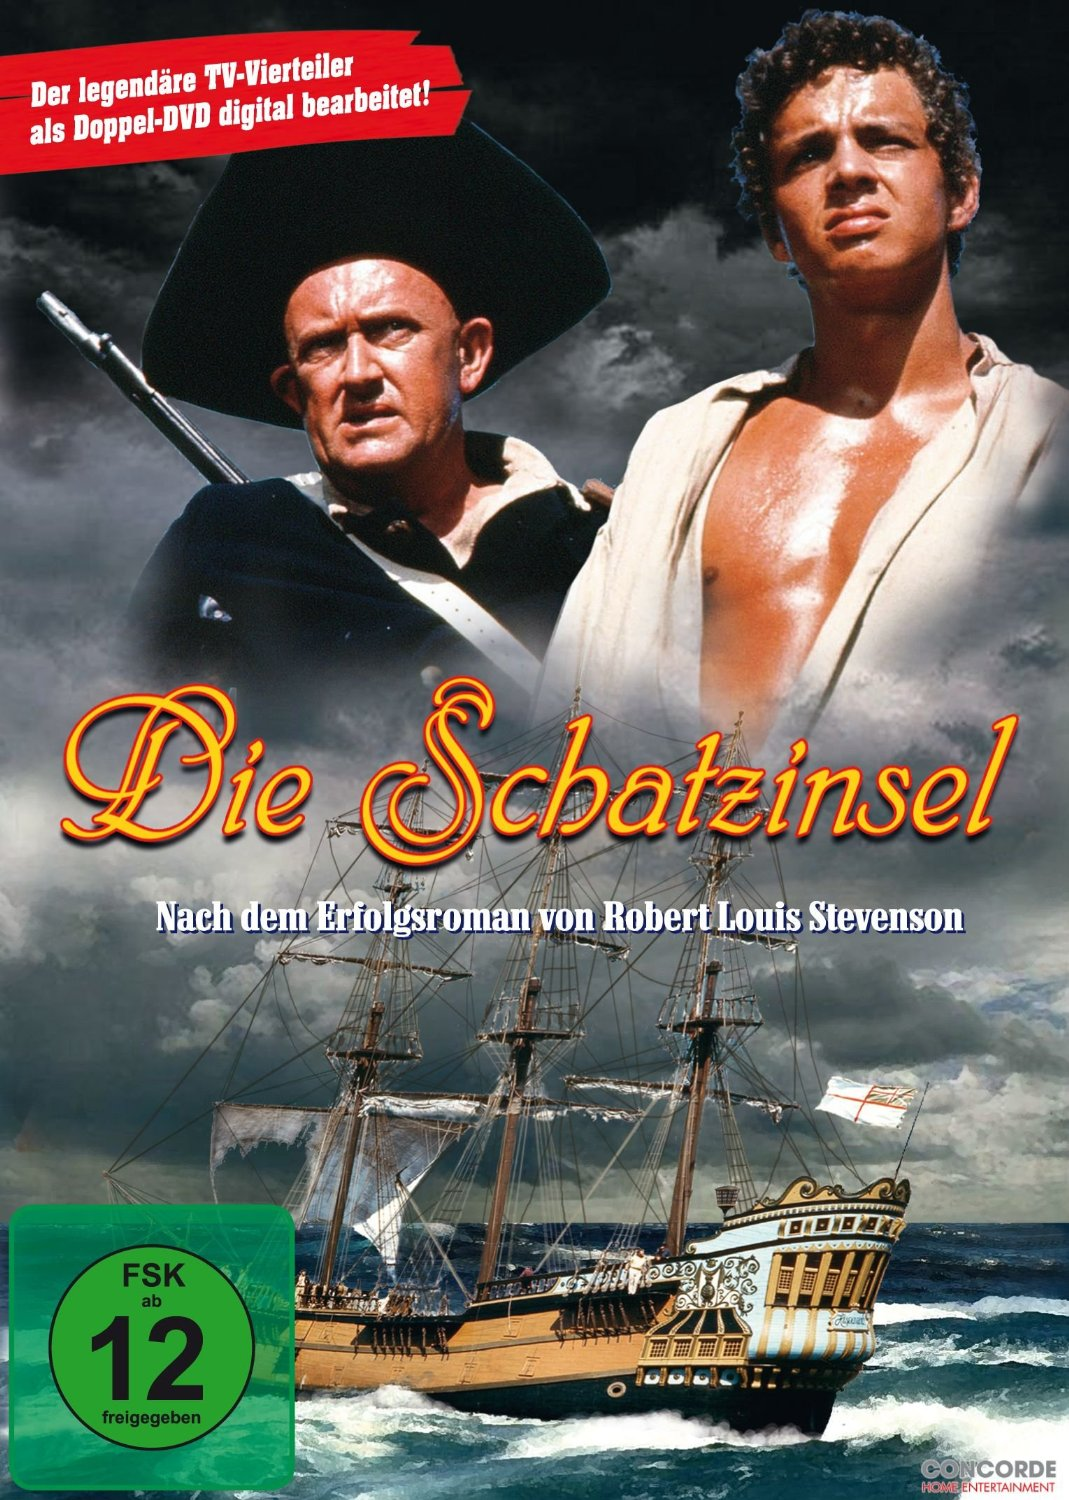 Y3yziryc in Die Schatzinsel 1966 (TV Vierteiler) German xvid